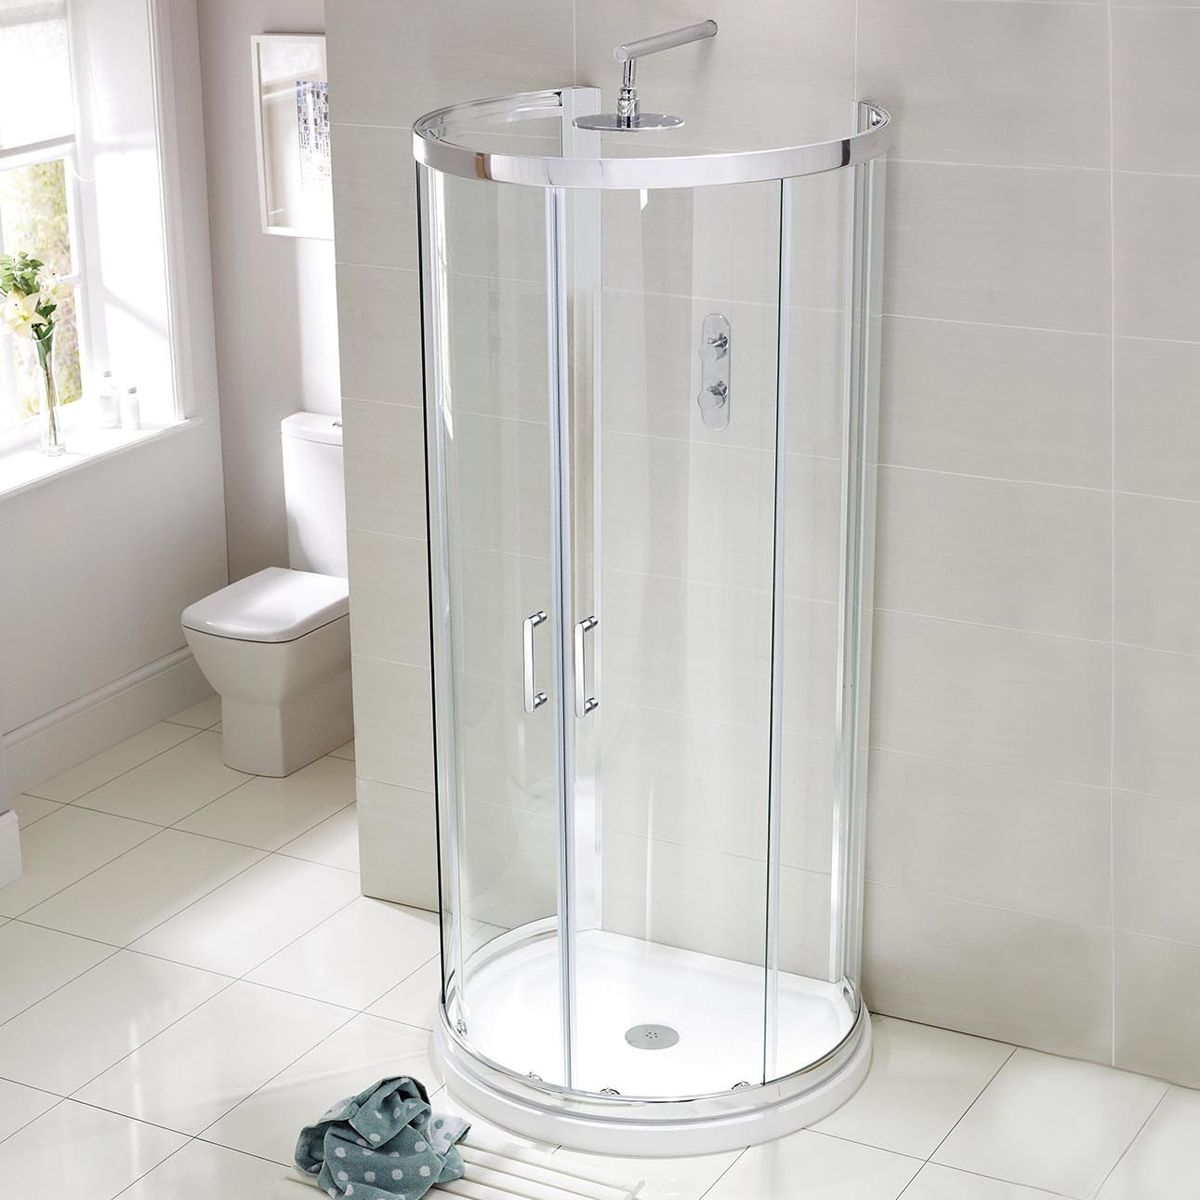 One of the smallest shower enclosures available installed against a wall